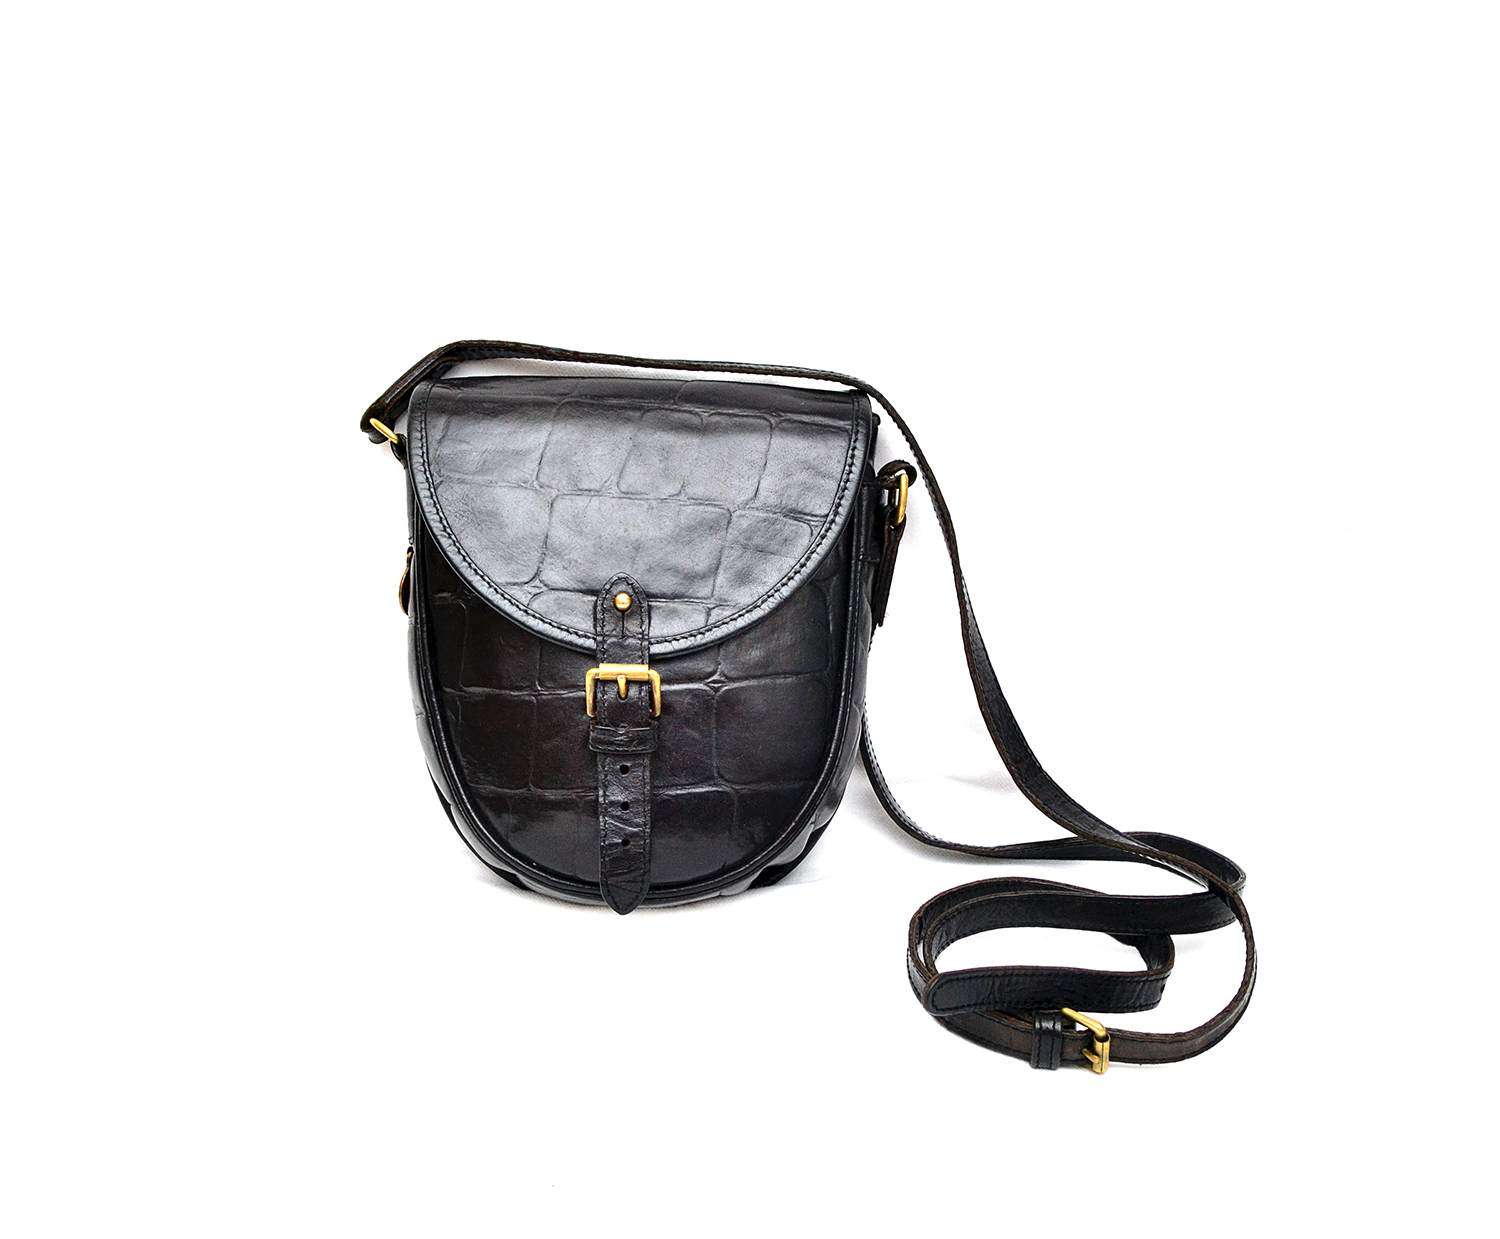 6fef474d1d22 ... where to buy auth mulberry vintage congo leather croc pattern cross  body shoulder bag 62913 c8764